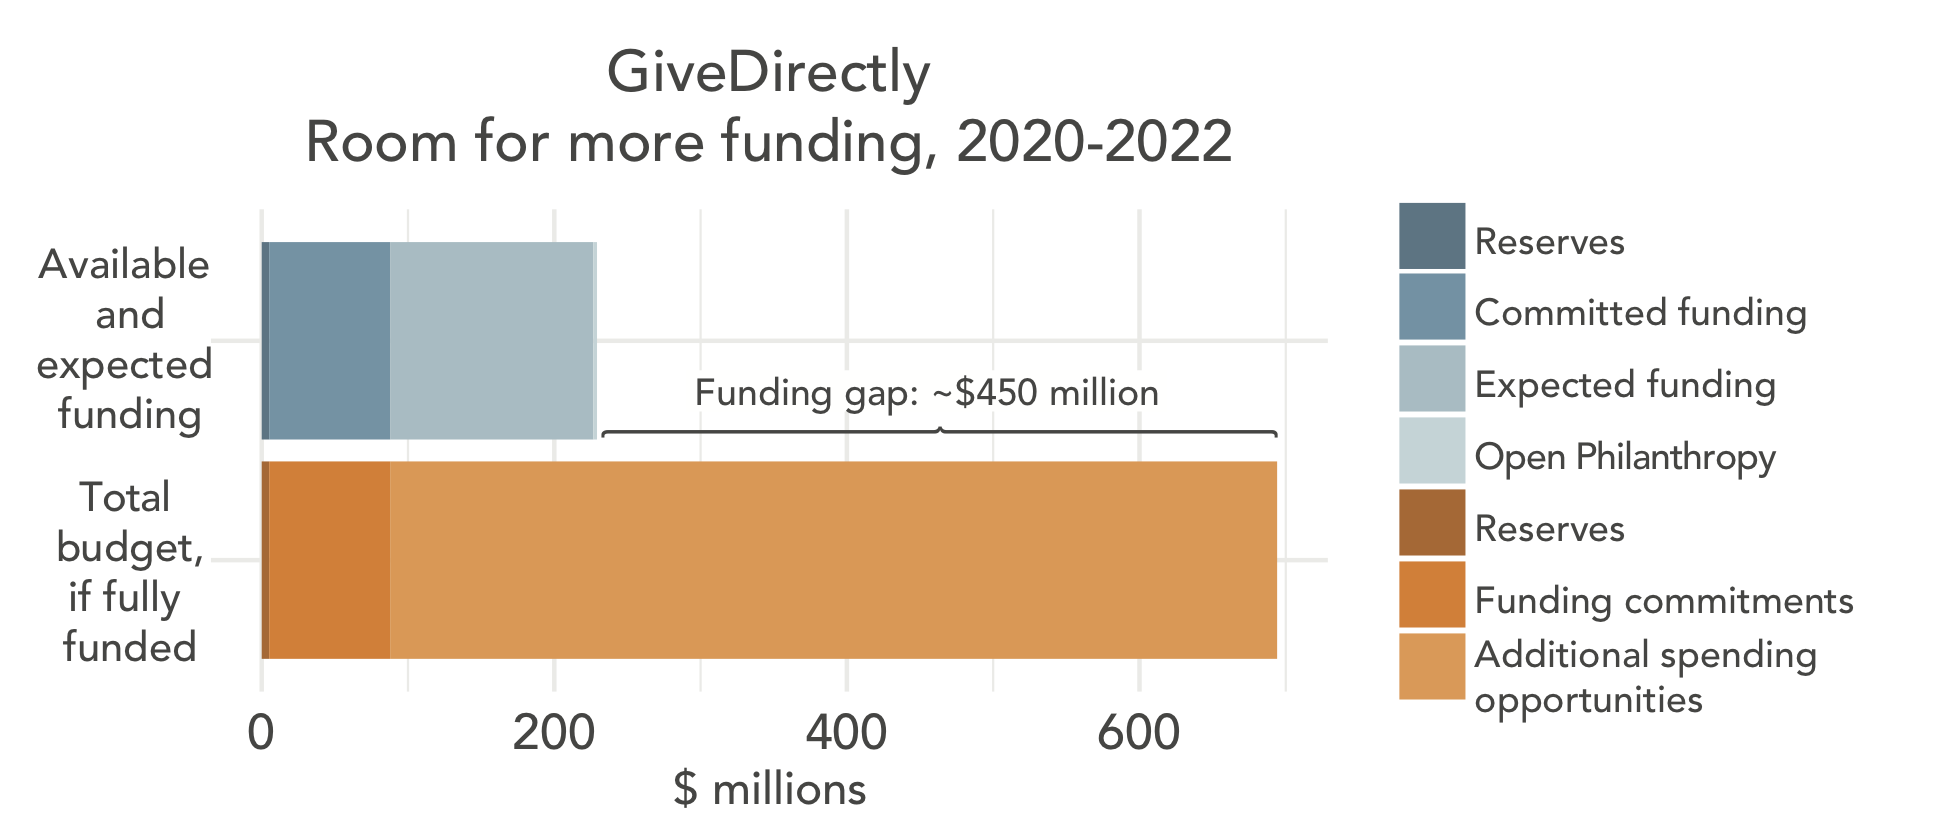 Room for more funding for GiveDirectly 2020-2022